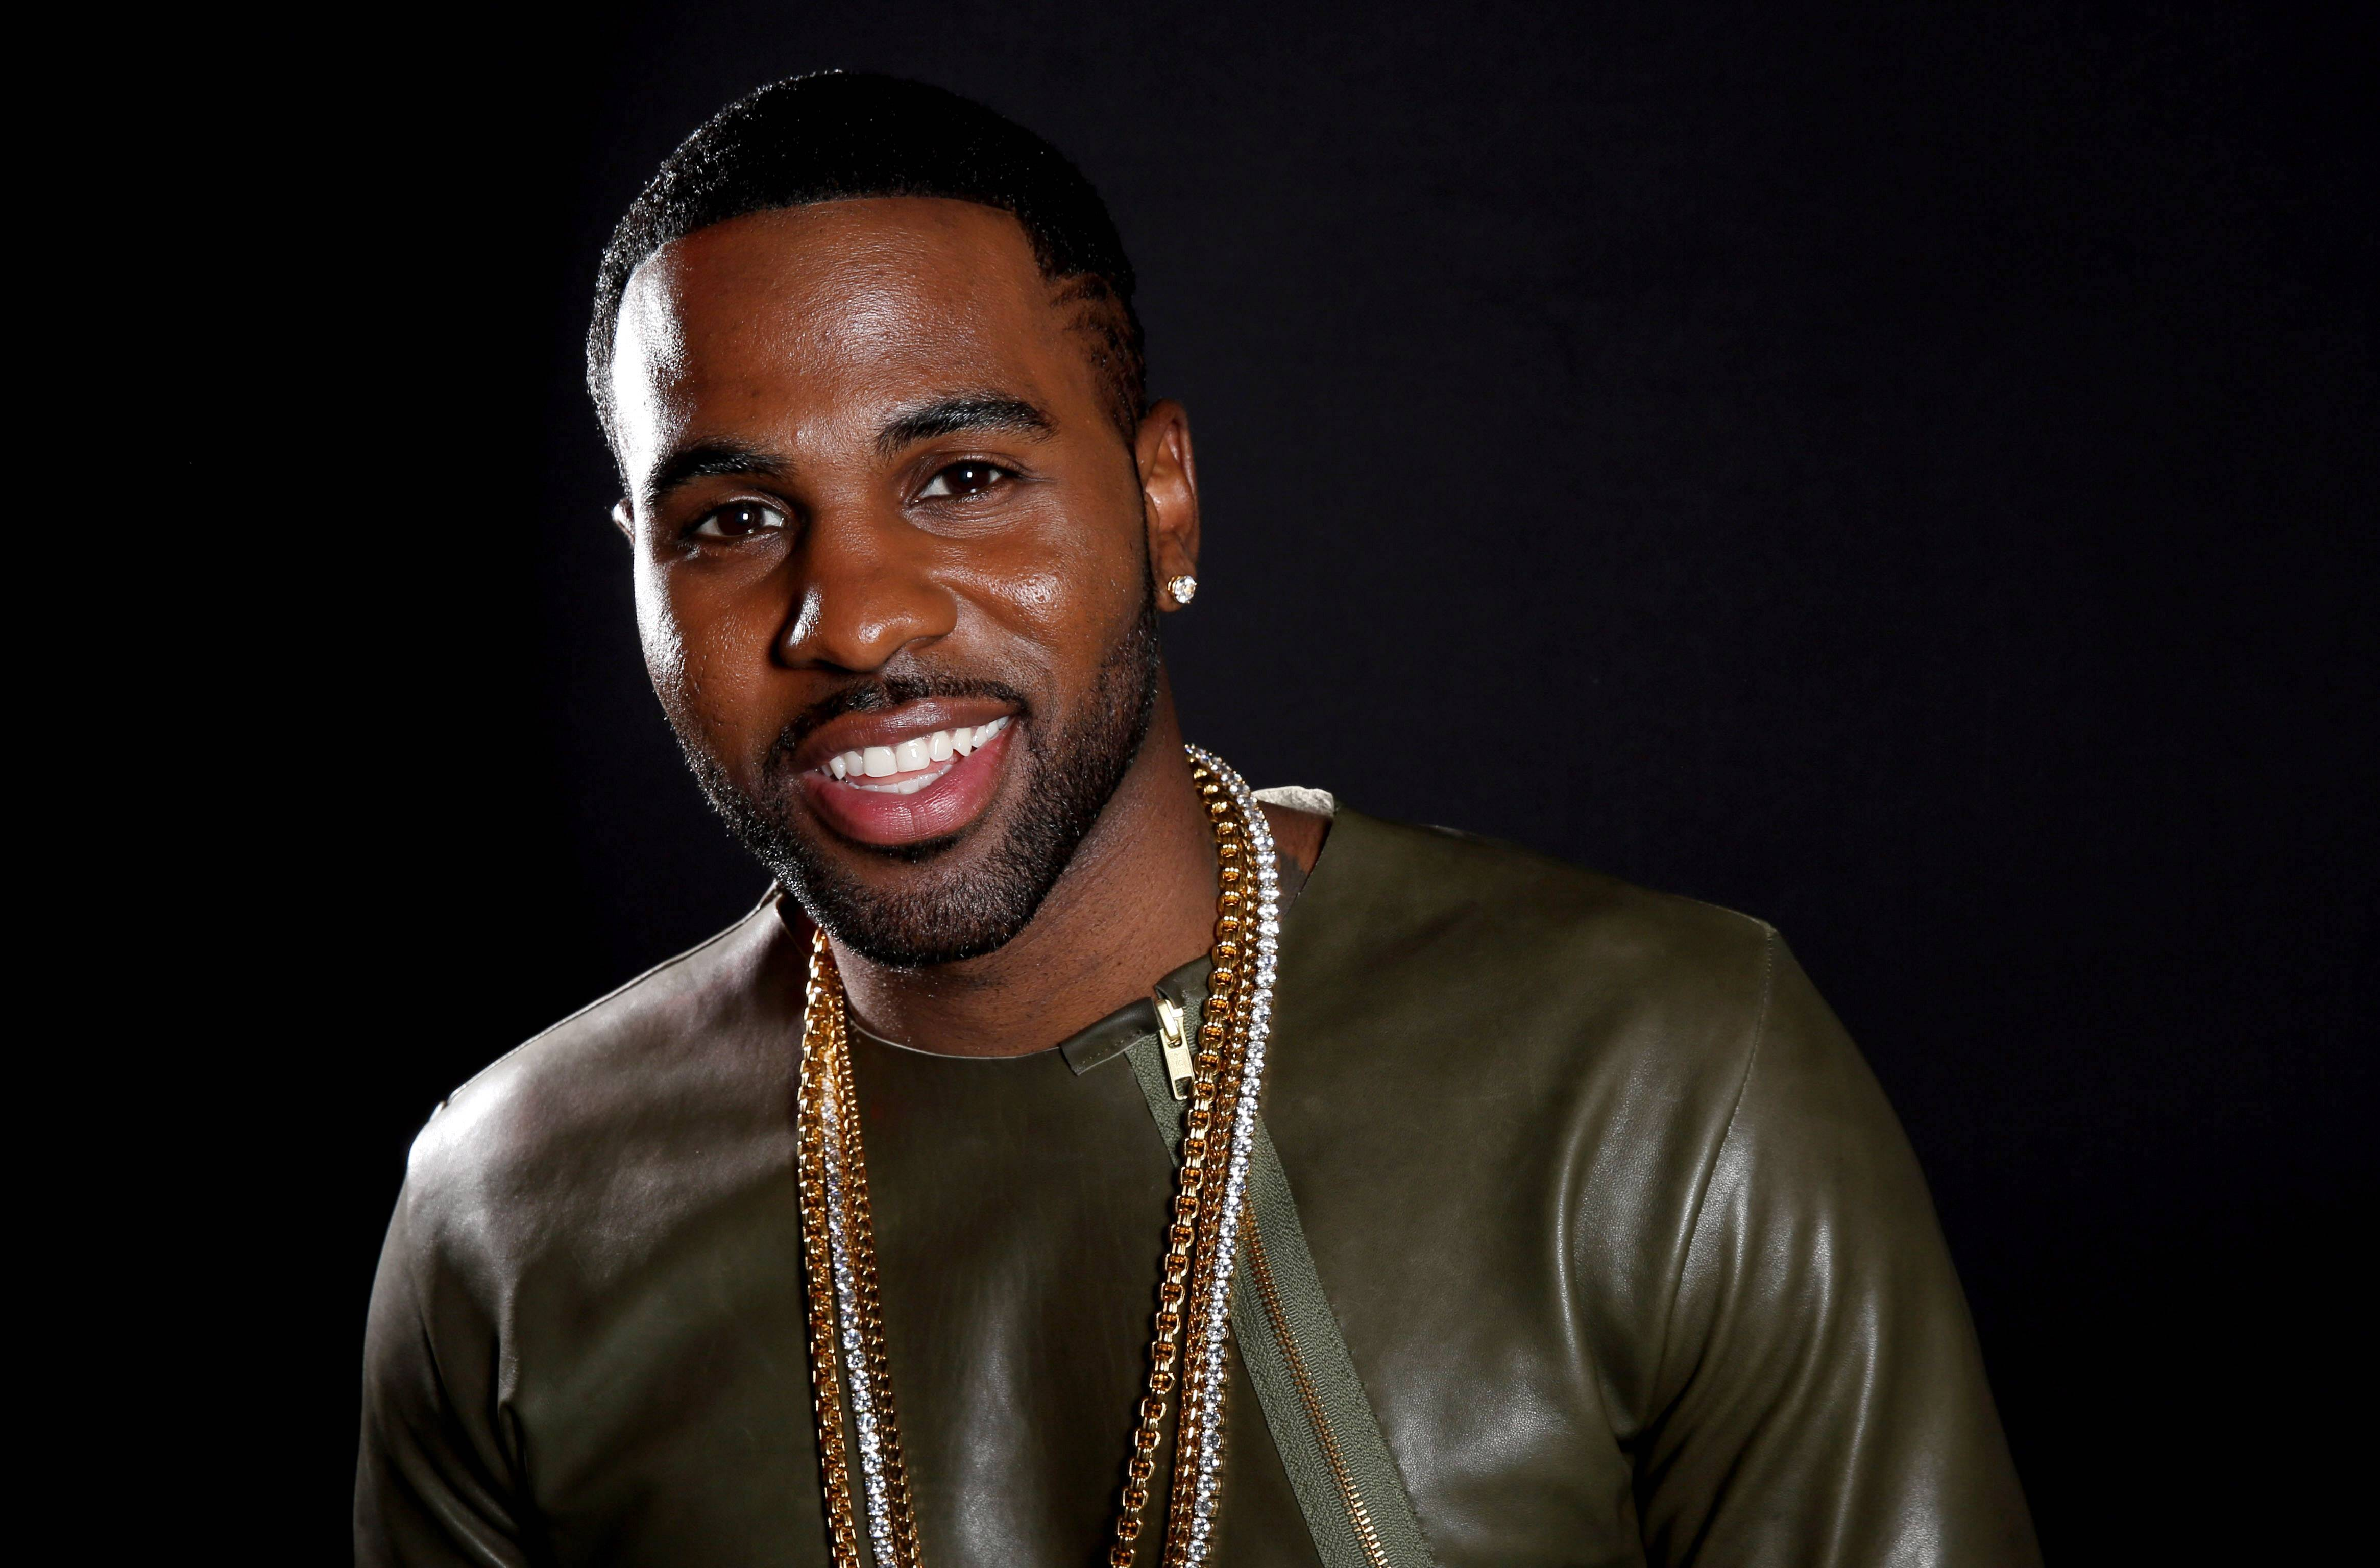 Jason Derulo is one of the artists performing at the Macy's Glamorama at Millennium Park's Harris Theater for Music and Dance in Chicago on Friday, Aug. 8.